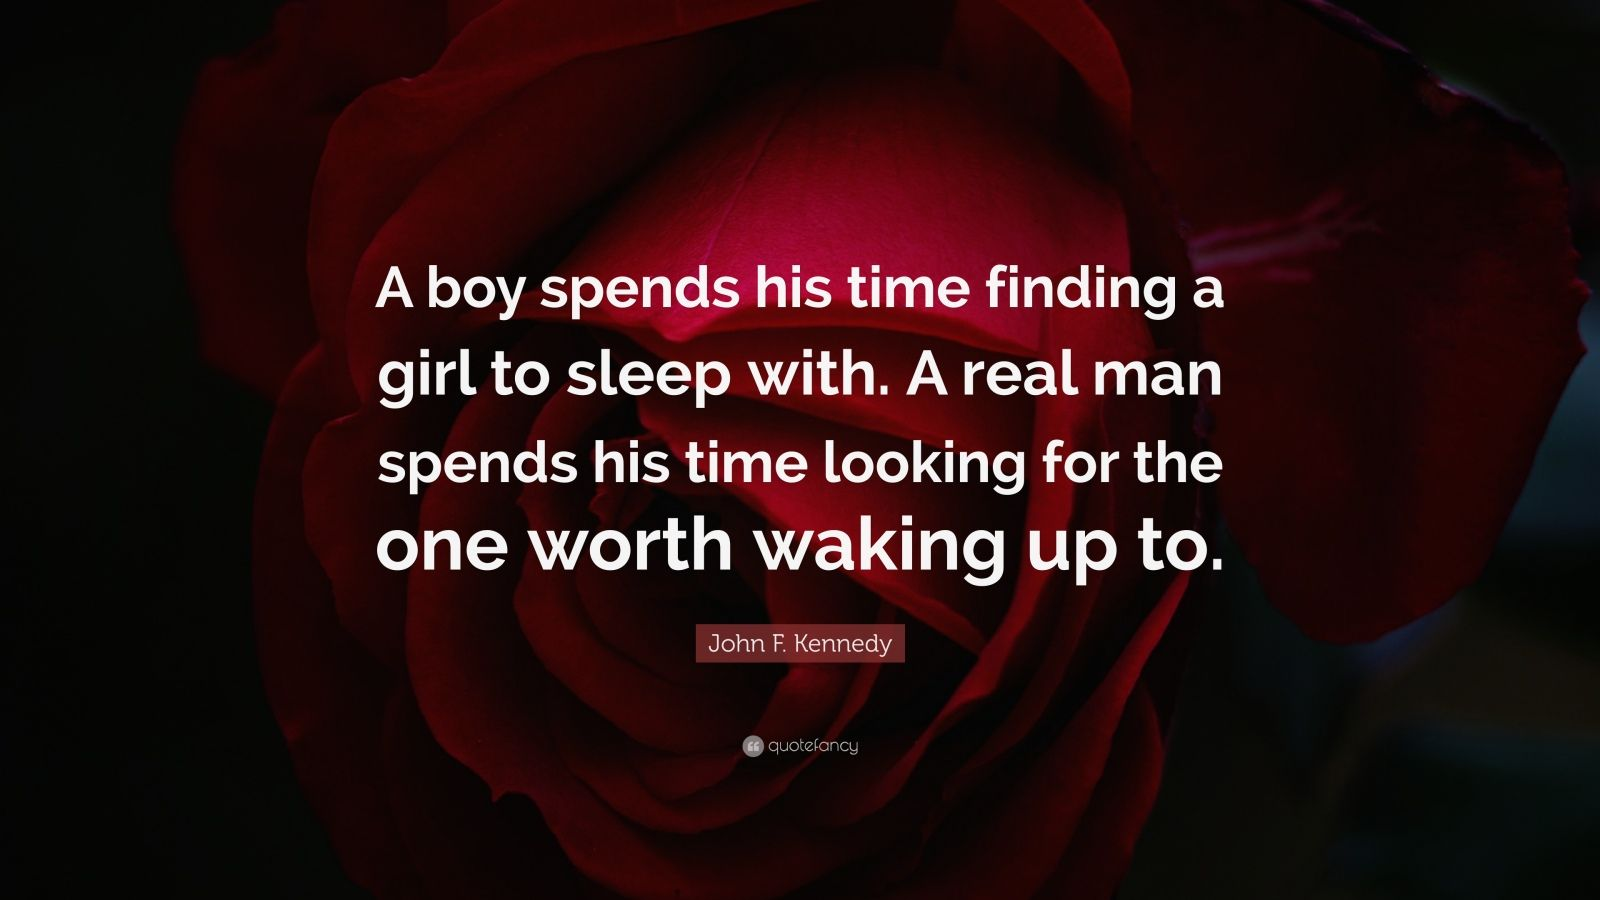 """John F. Kennedy Quote: """"A boy spends his time finding a girl to sleep with. A real man spends his time looking for the one worth waking up to."""""""